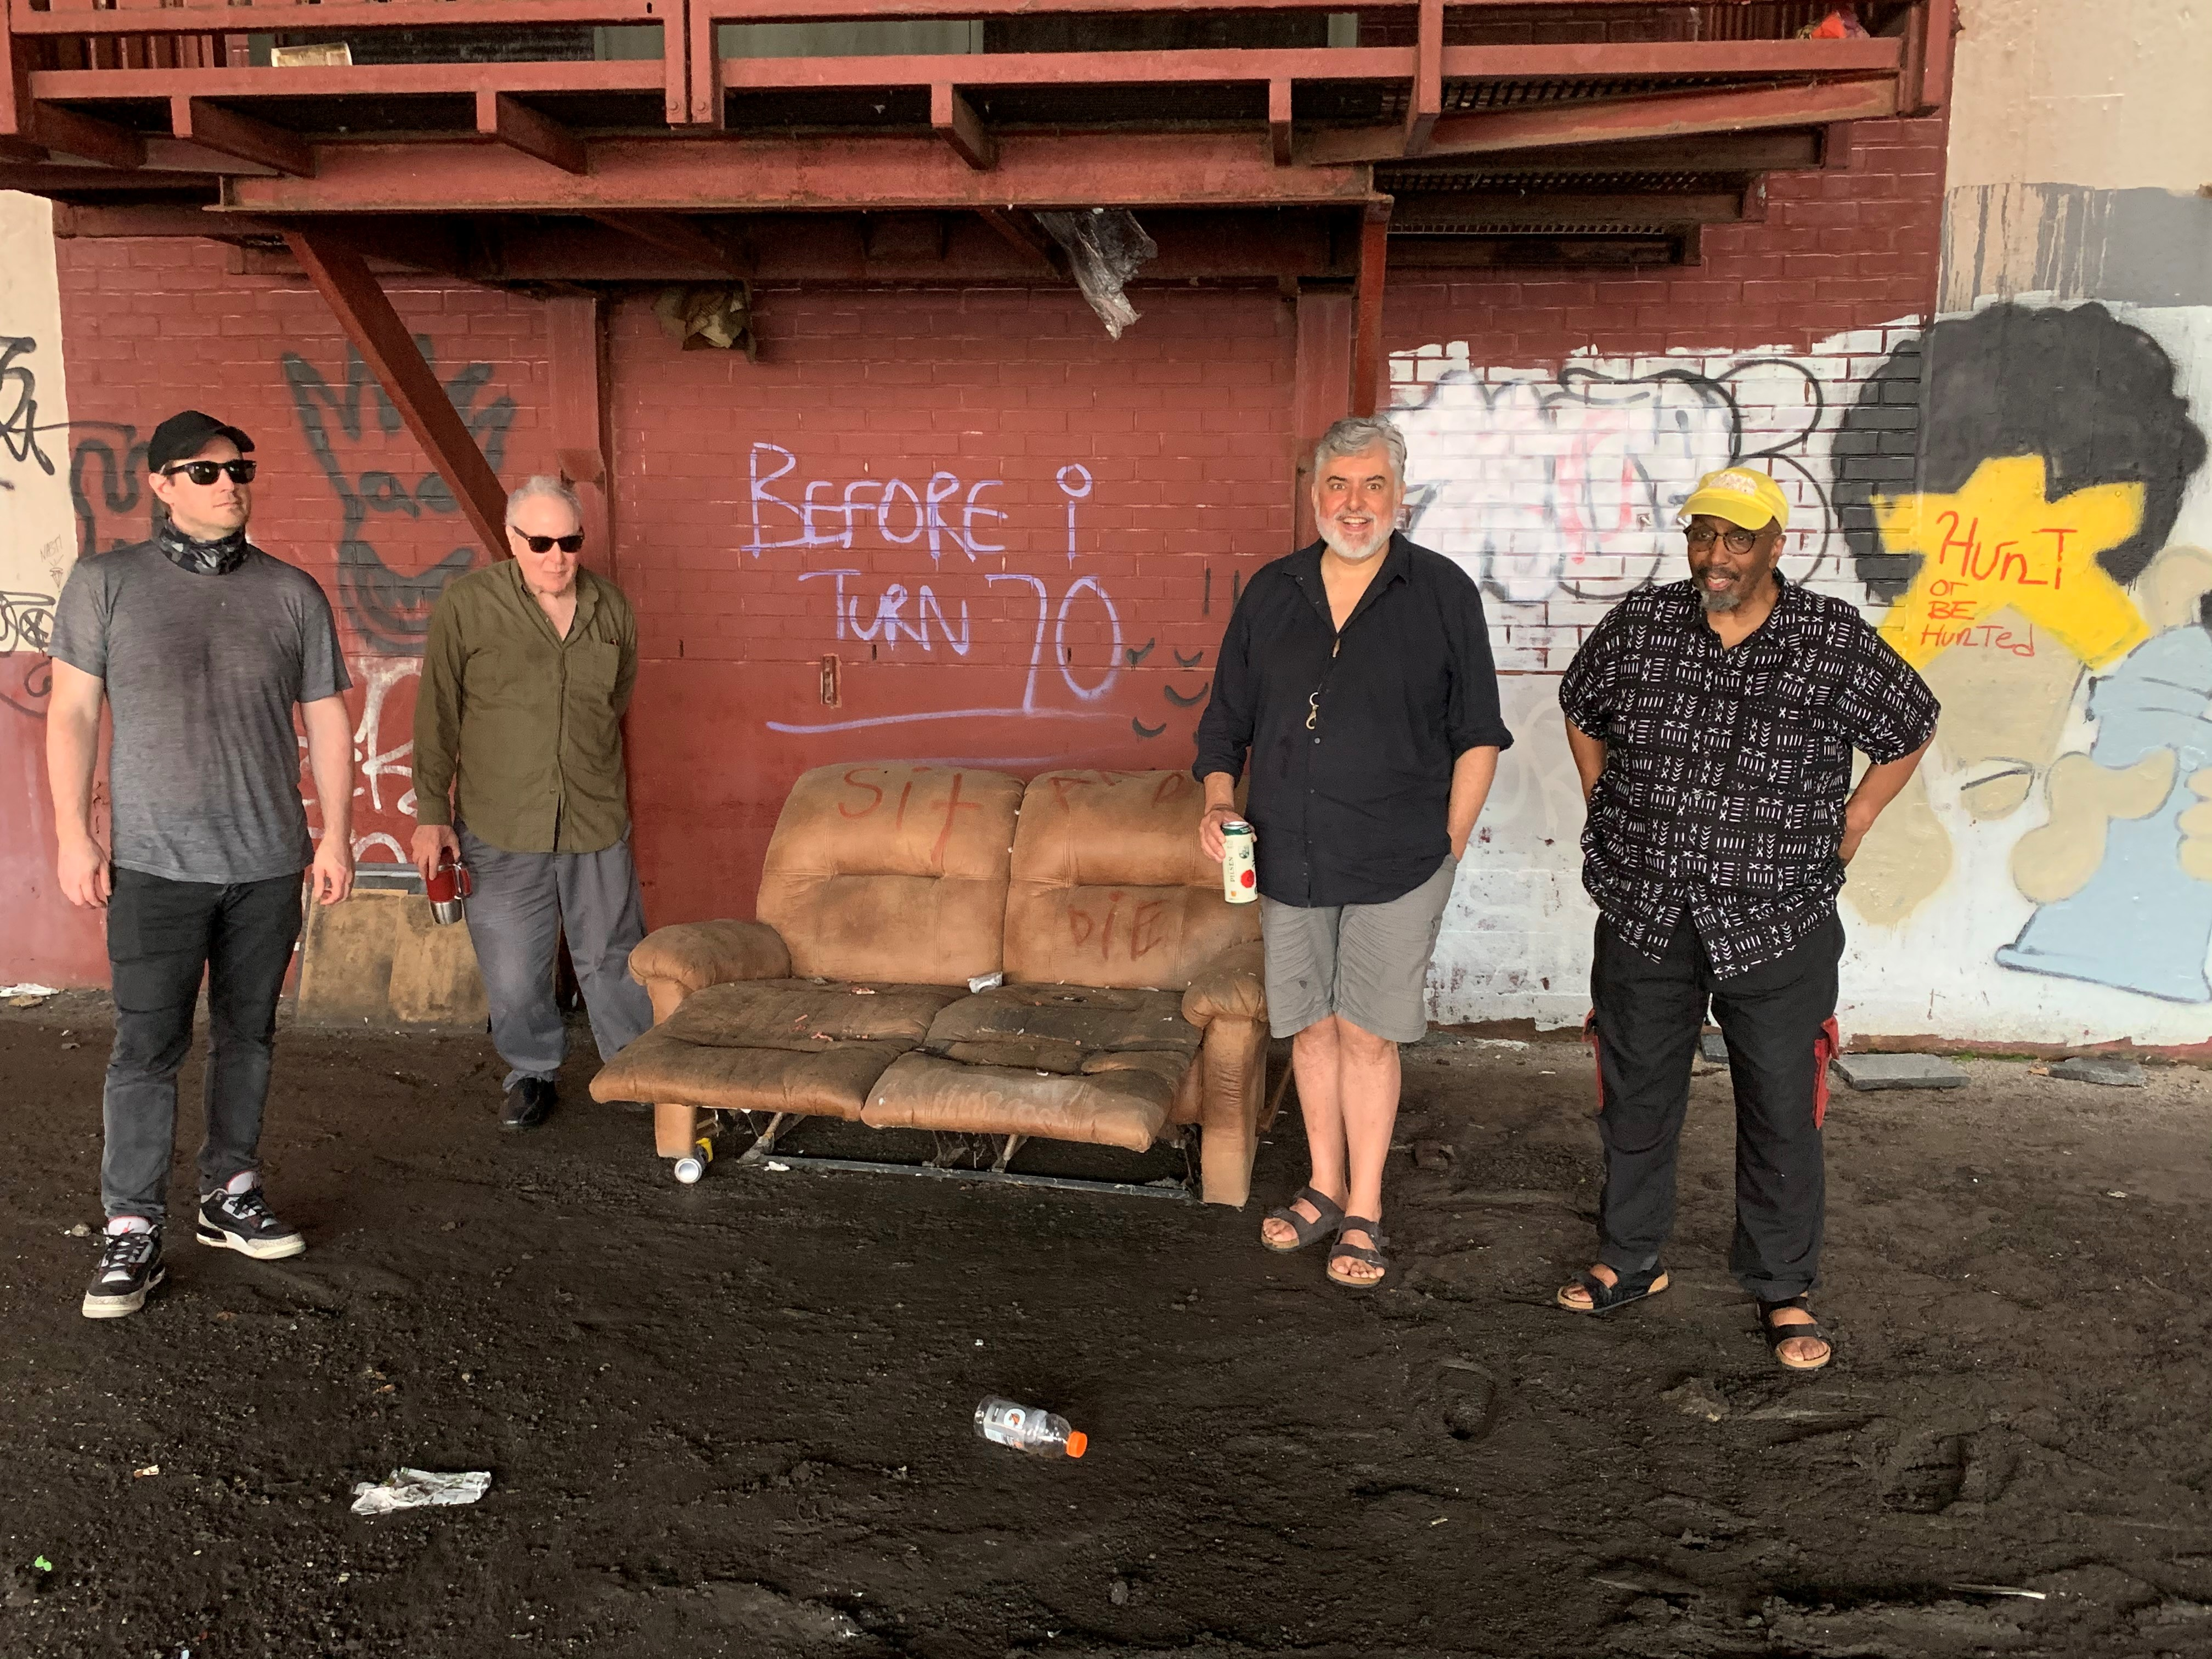 Tim Dahl, Billy Mintz, Tony Malaby, and William Parker under the Turnpike